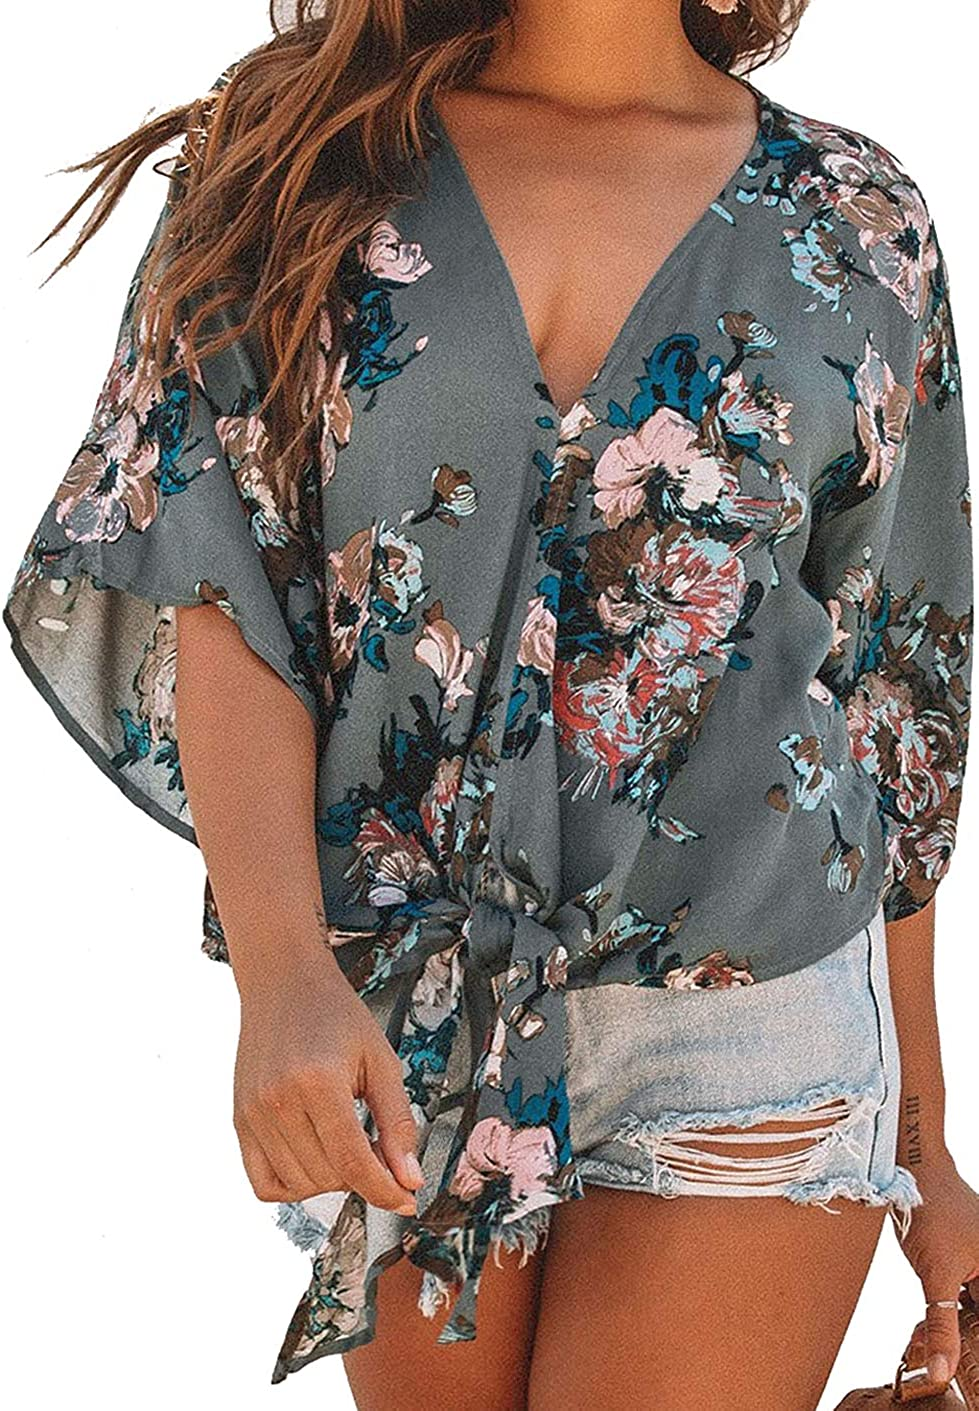 Shawhuwa Blouses Tie Front Womens Button Down Deep V Neck Tops 3/4 Sleeve Casual Blouse Tops Summer Chiffon Shirts